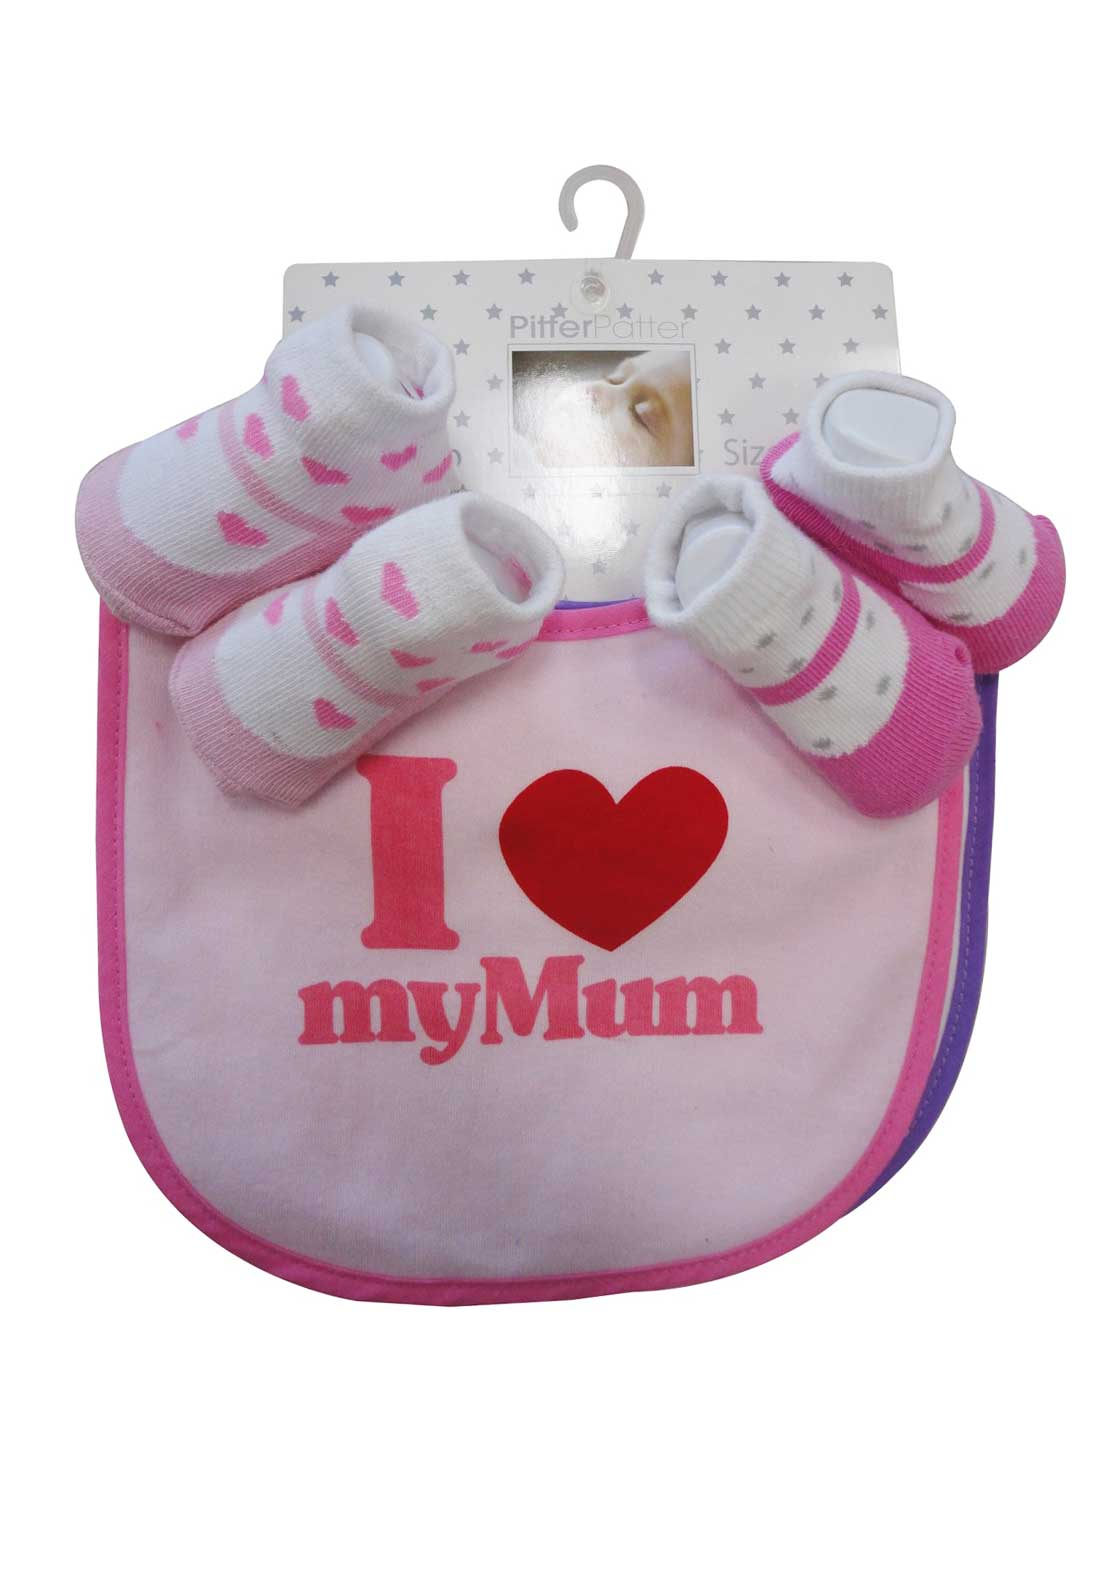 Pitter Patter I Love My Mum Bibs and Socks Set, Pink